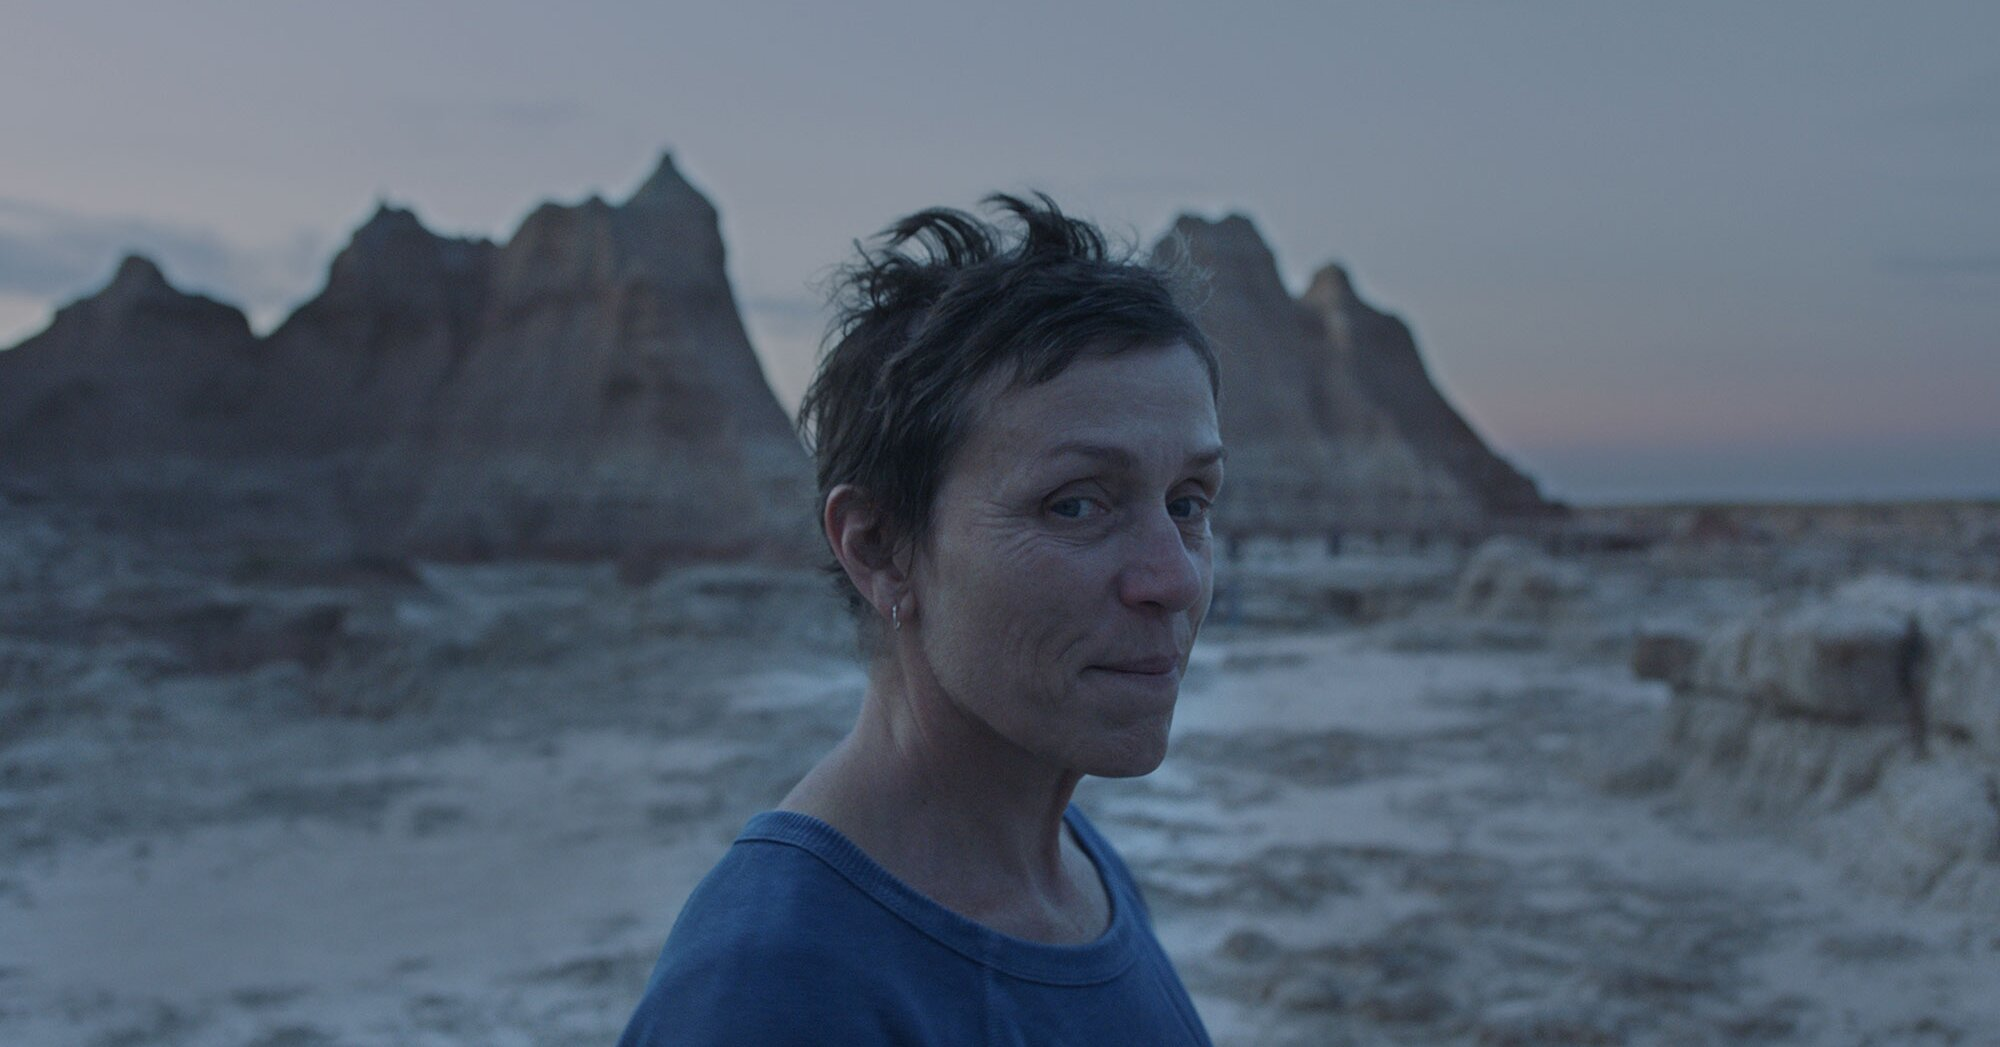 'Nomadland' storms Oscar race with TIFF People's Choice Award win